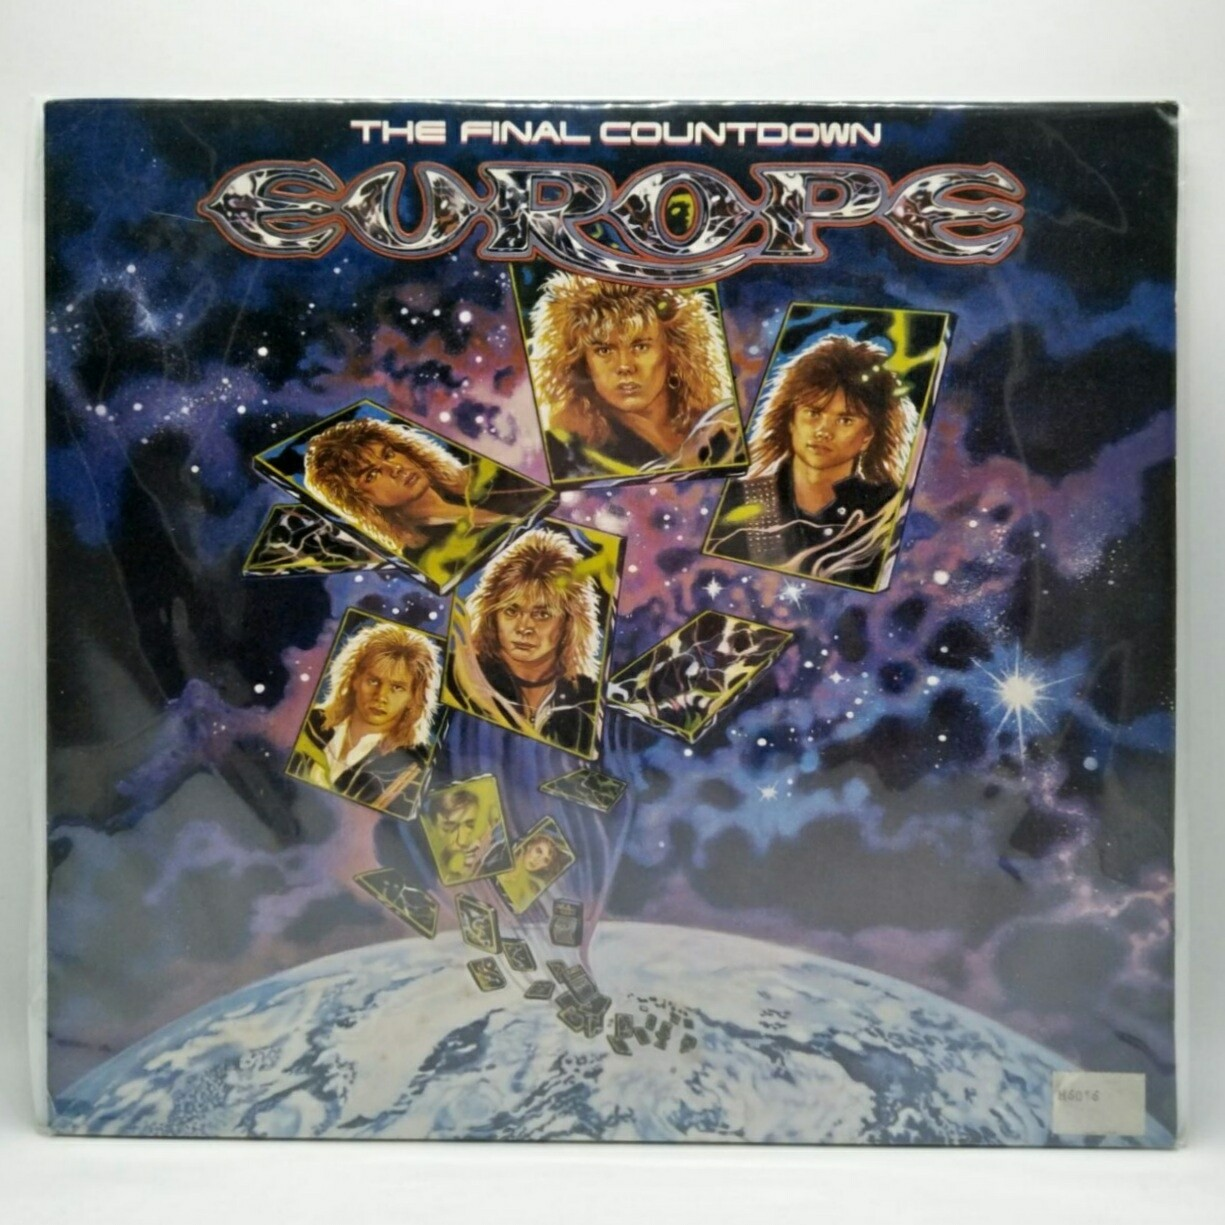 [USED] EUROPE -THE FINAL COUNTDOWN- LP